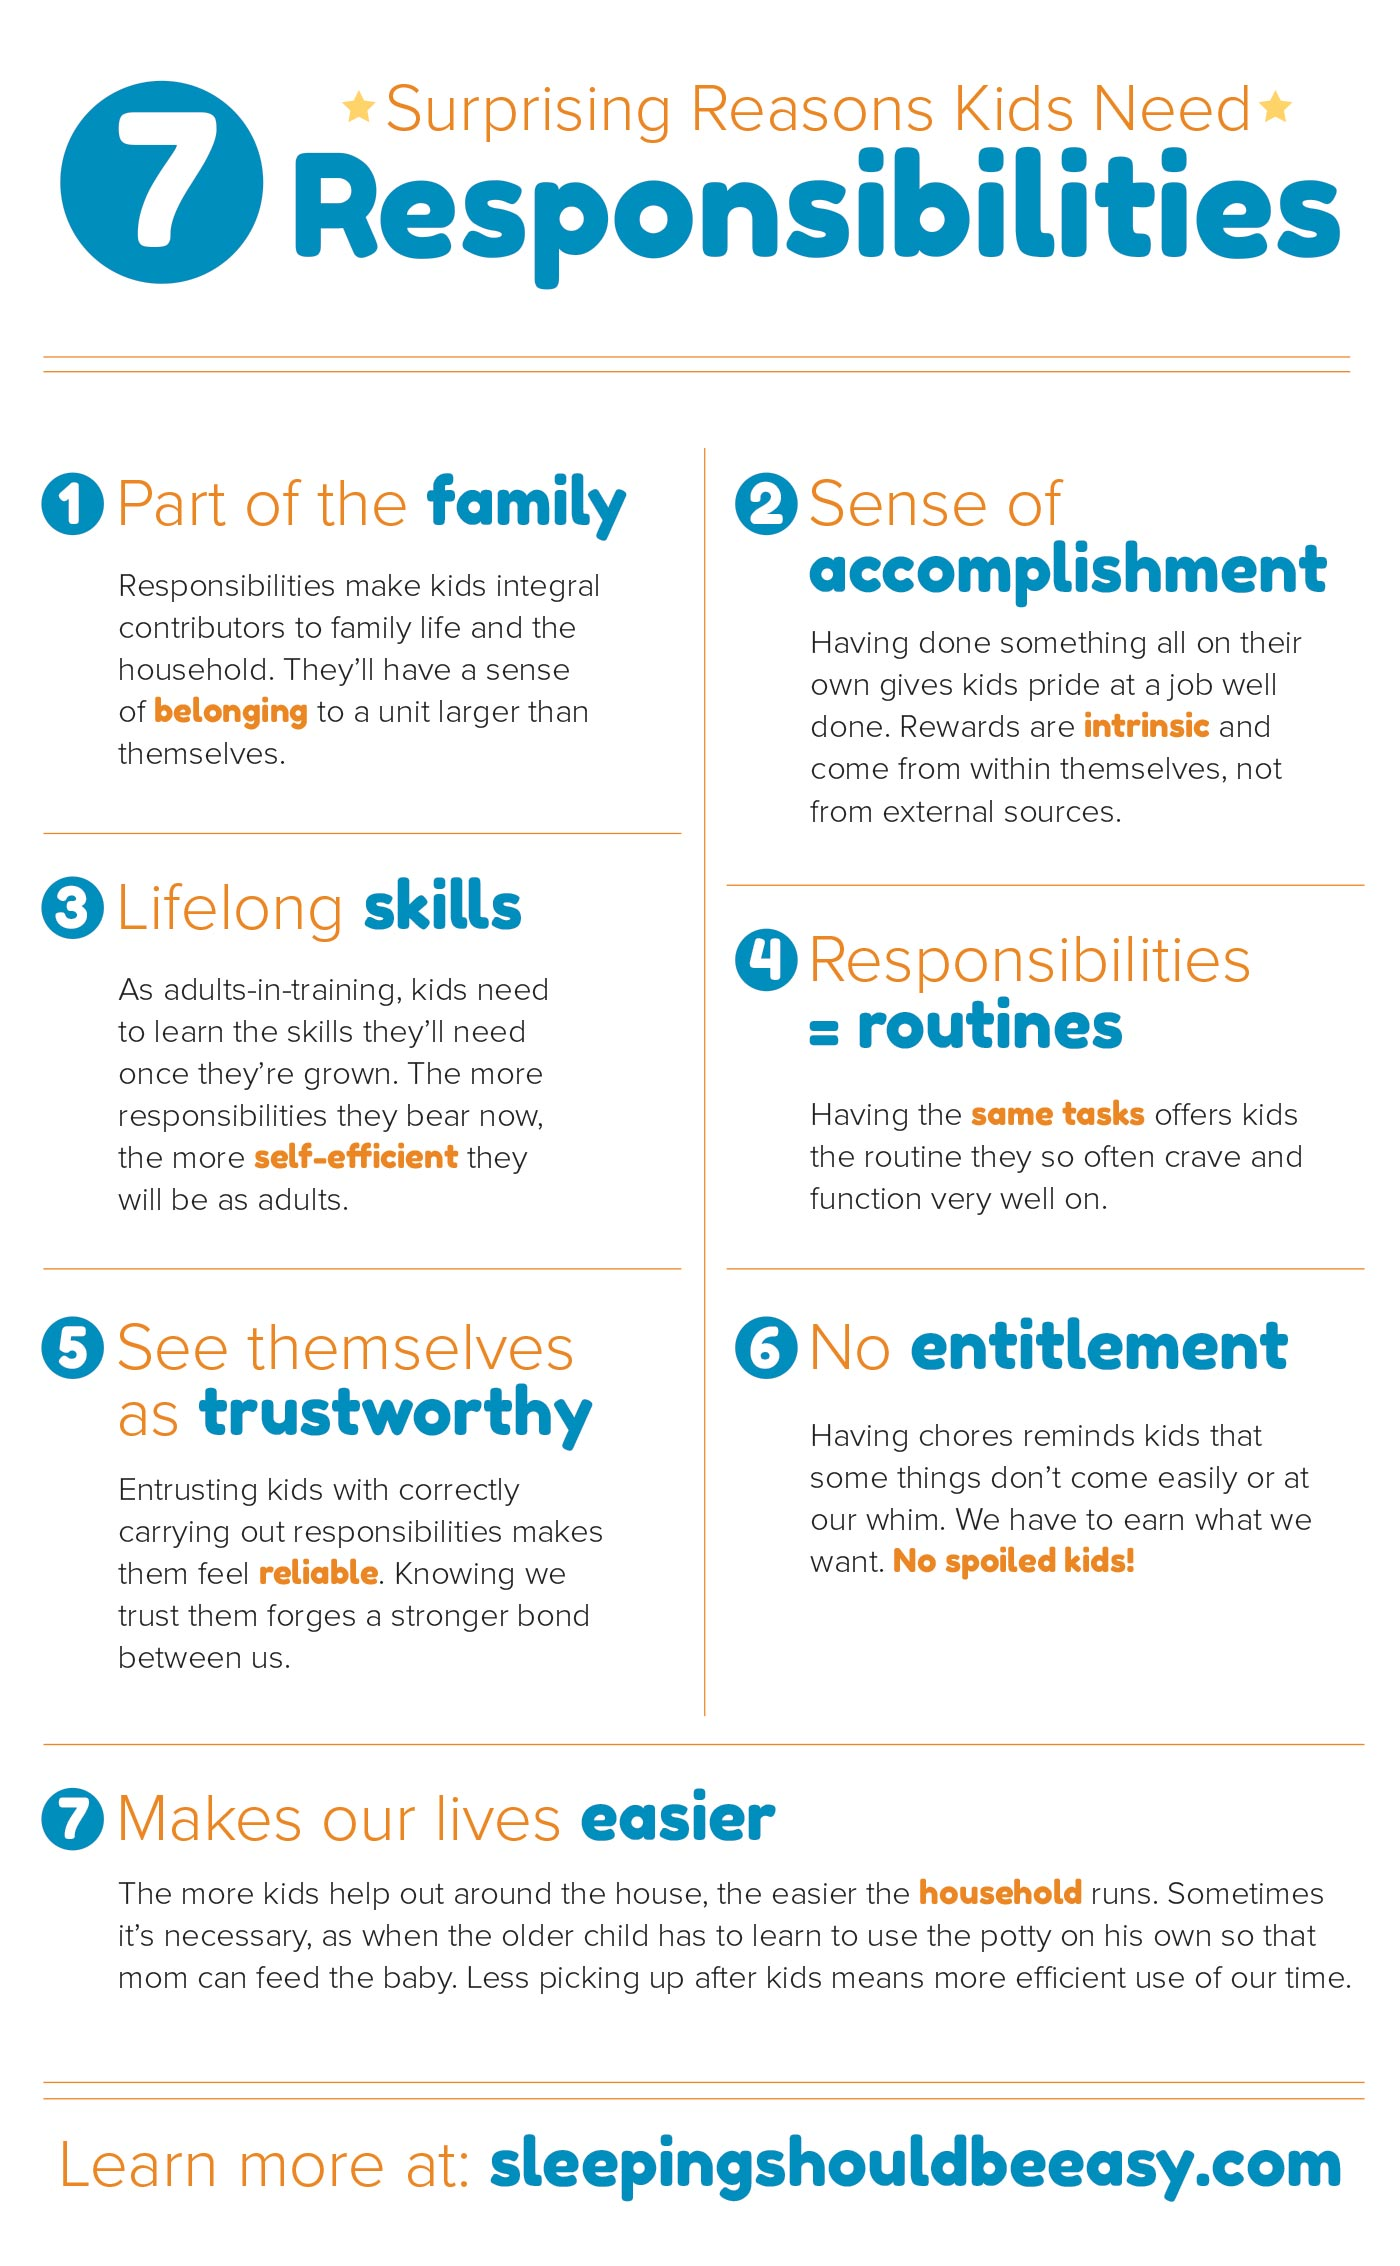 7 Surprising Benefits Of Chores And Responsibilities For Kids